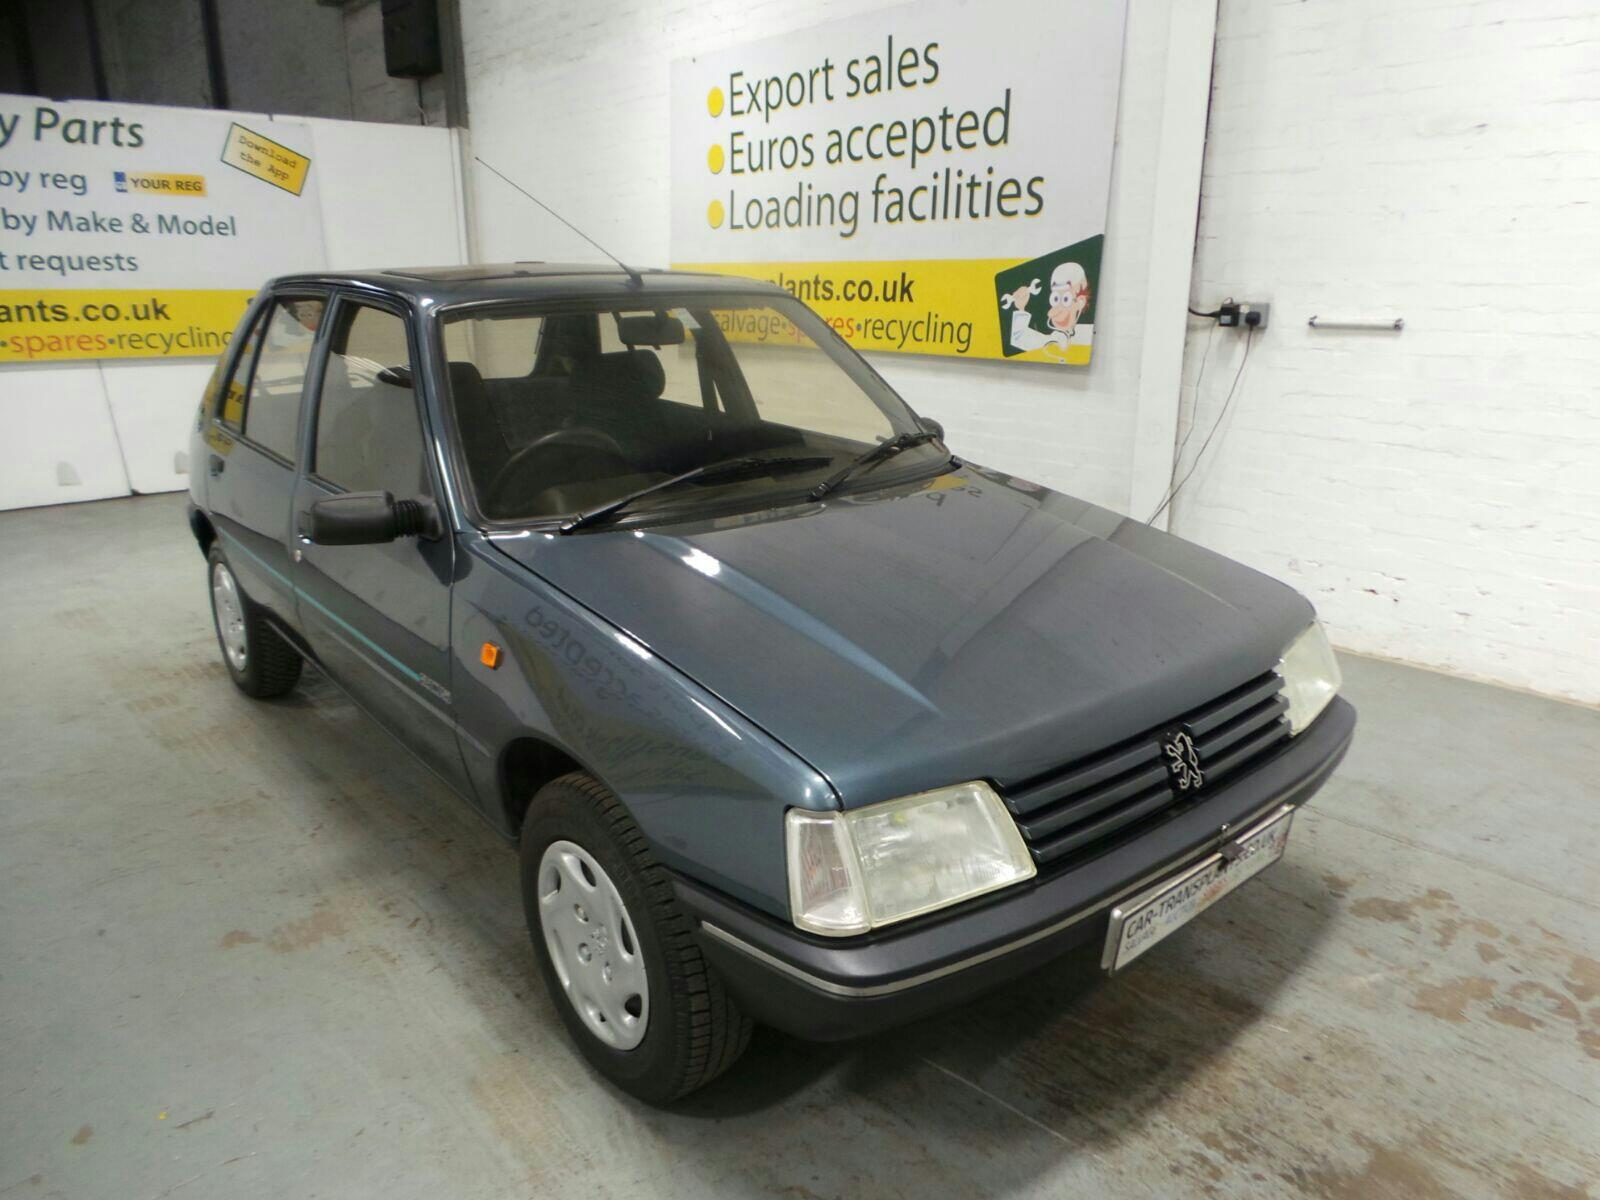 1995 PEUGEOT 205 MK1 1983 TO 1996 5 DOOR HATCHBACK